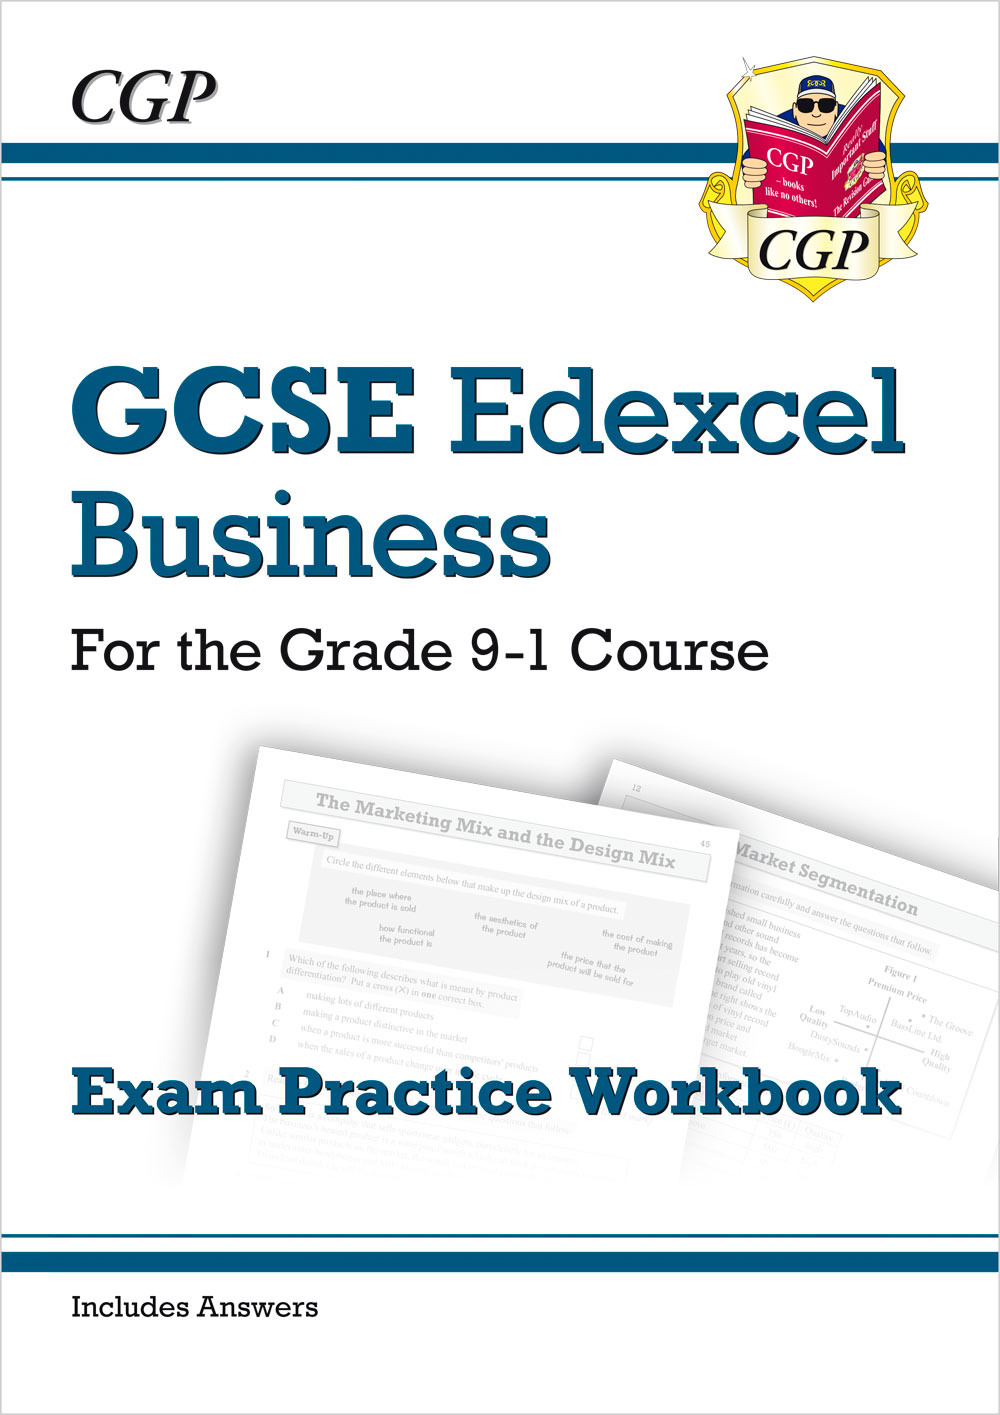 BUEQ41 - New GCSE Business Edexcel Exam Practice Workbook - for the Grade 9-1 Course (includes Answe